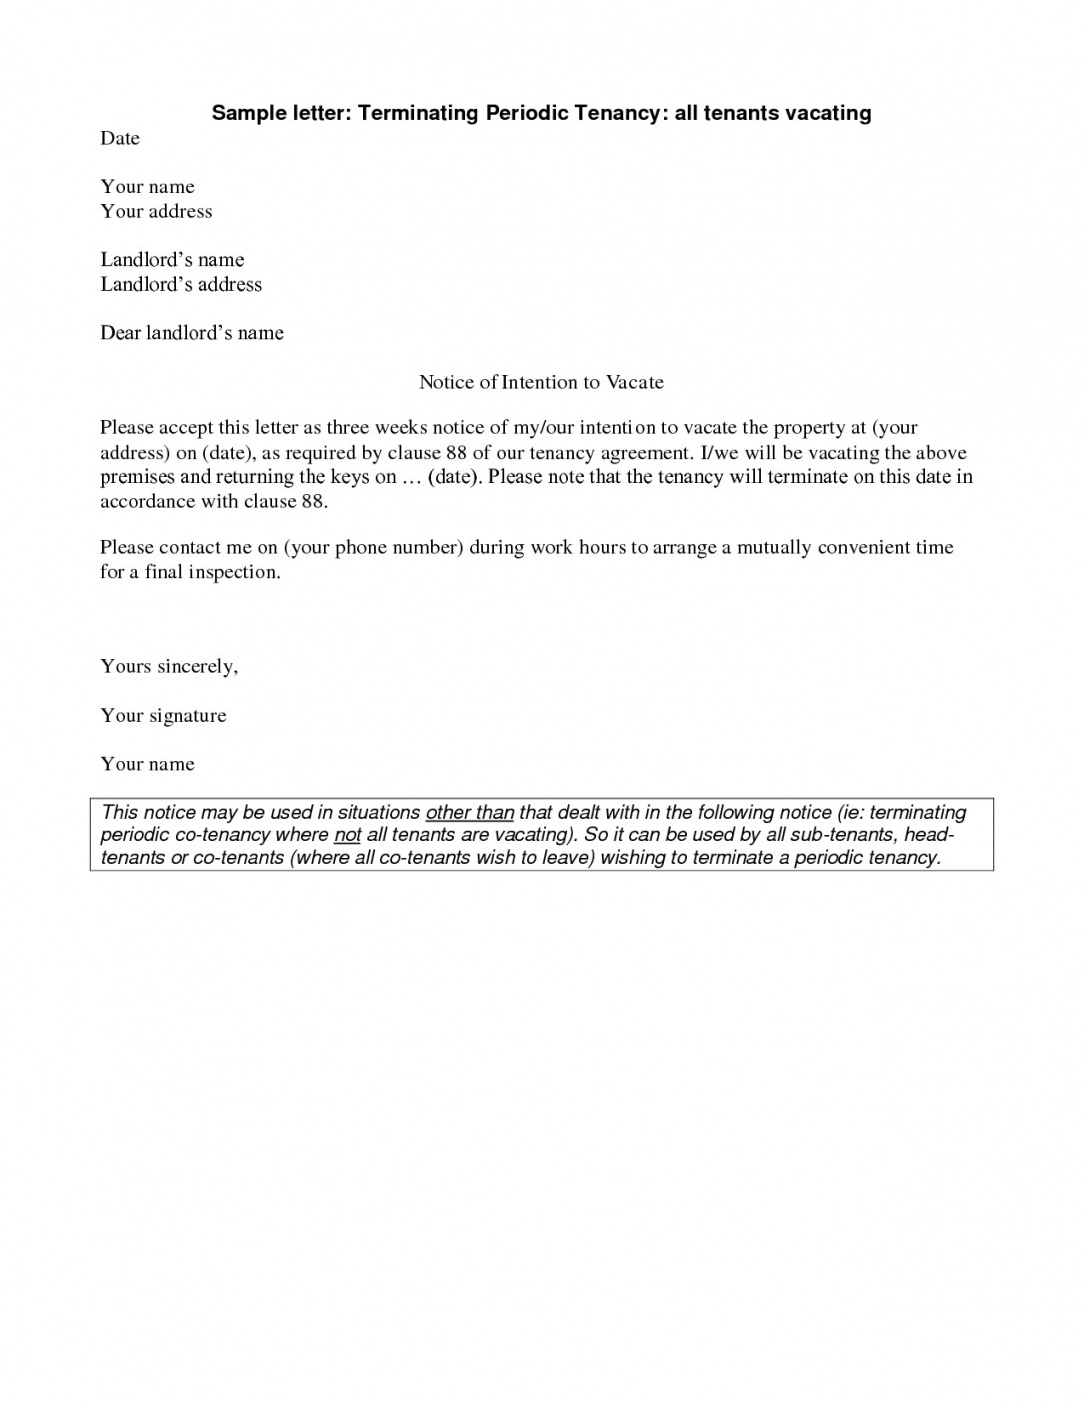 editable giving notice to tenants letter template samples  letter cover giving notice to tenants letter template doc